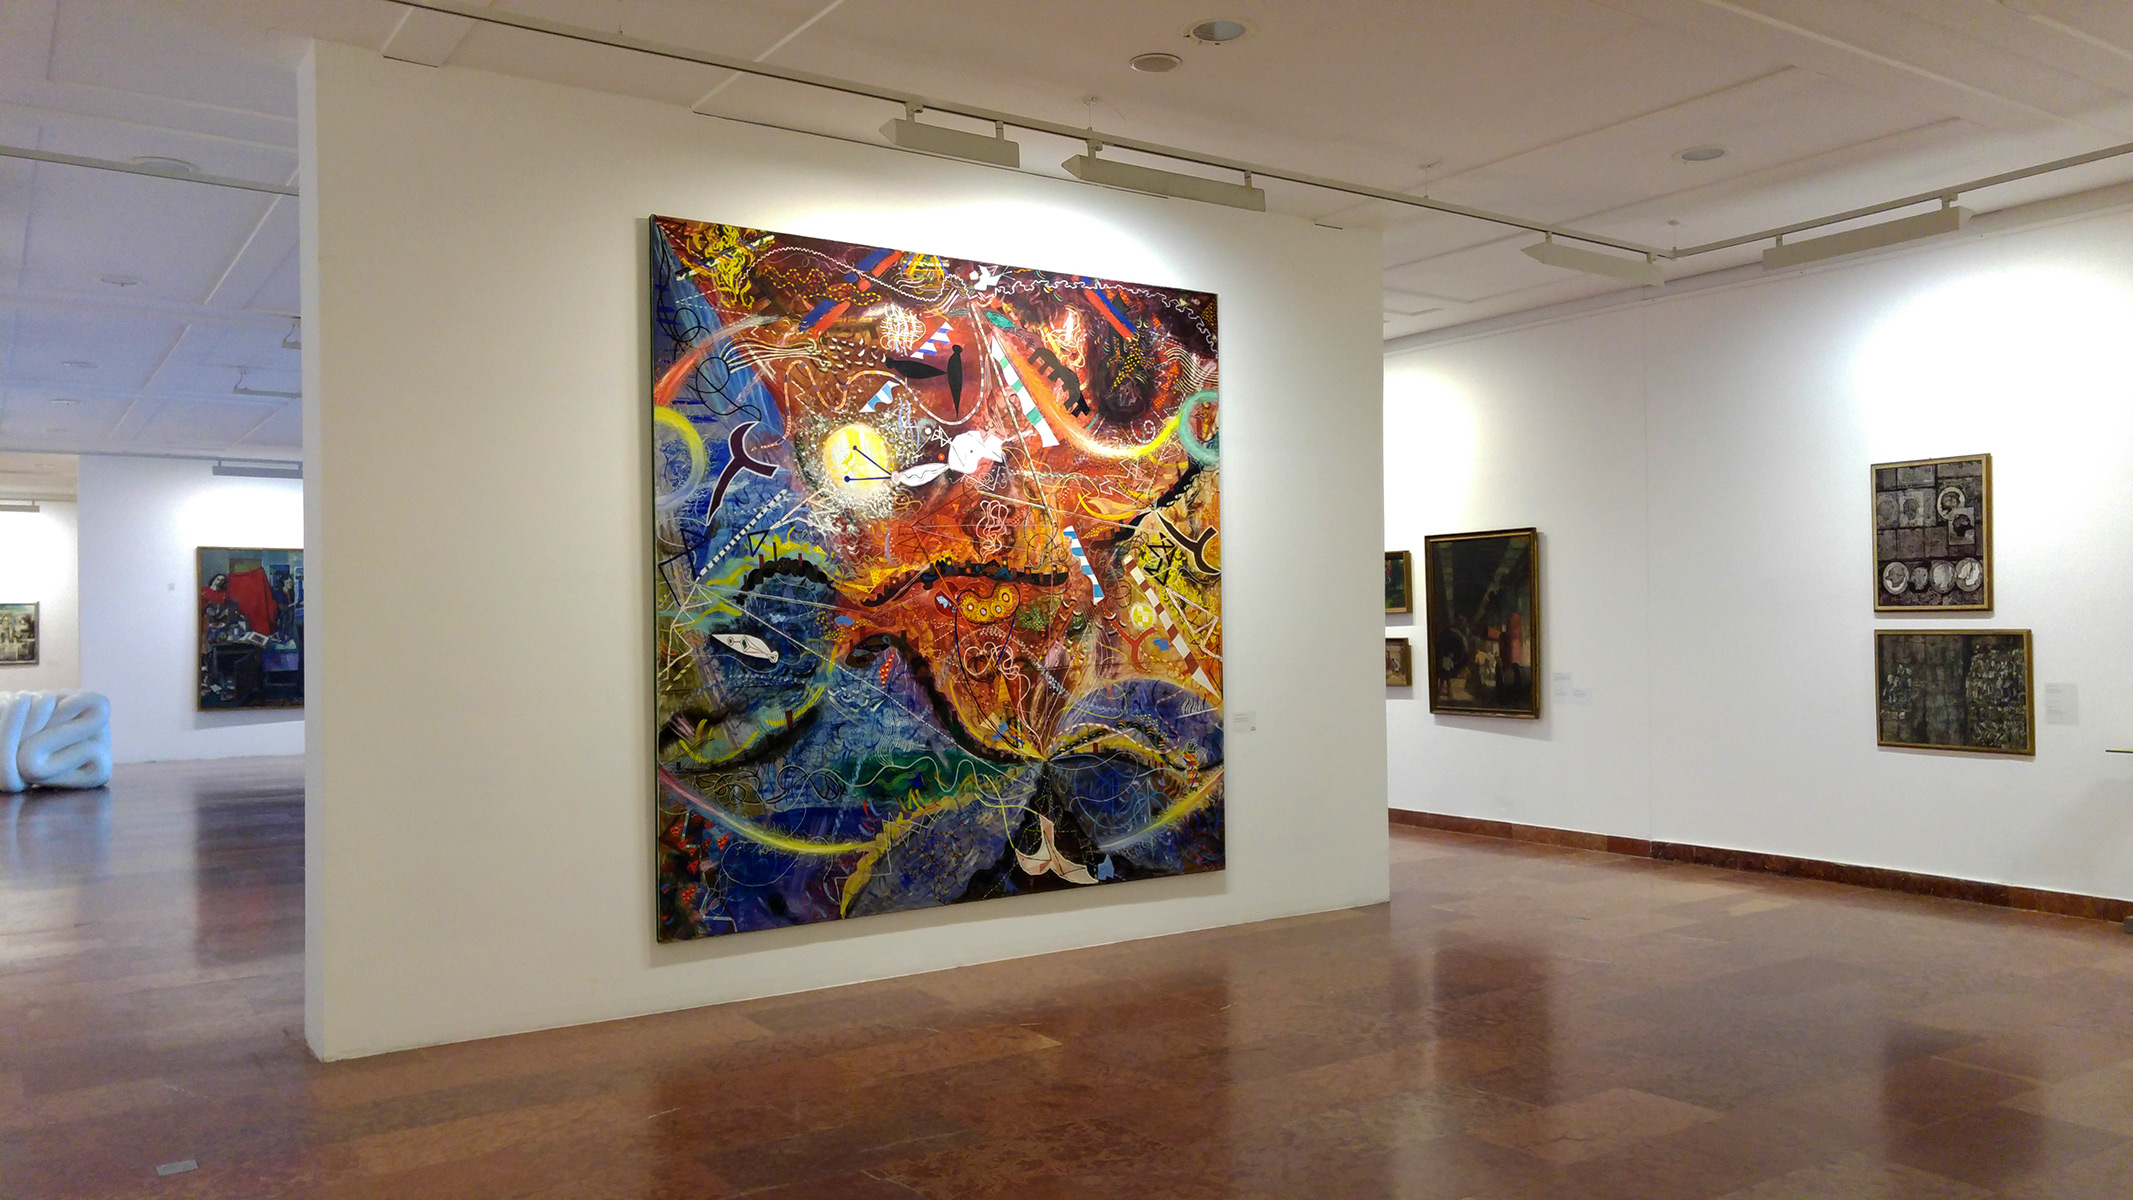 Installation view with the painting of Tamás Losonczy in the forefront (Great Purifying Storm, 1961)